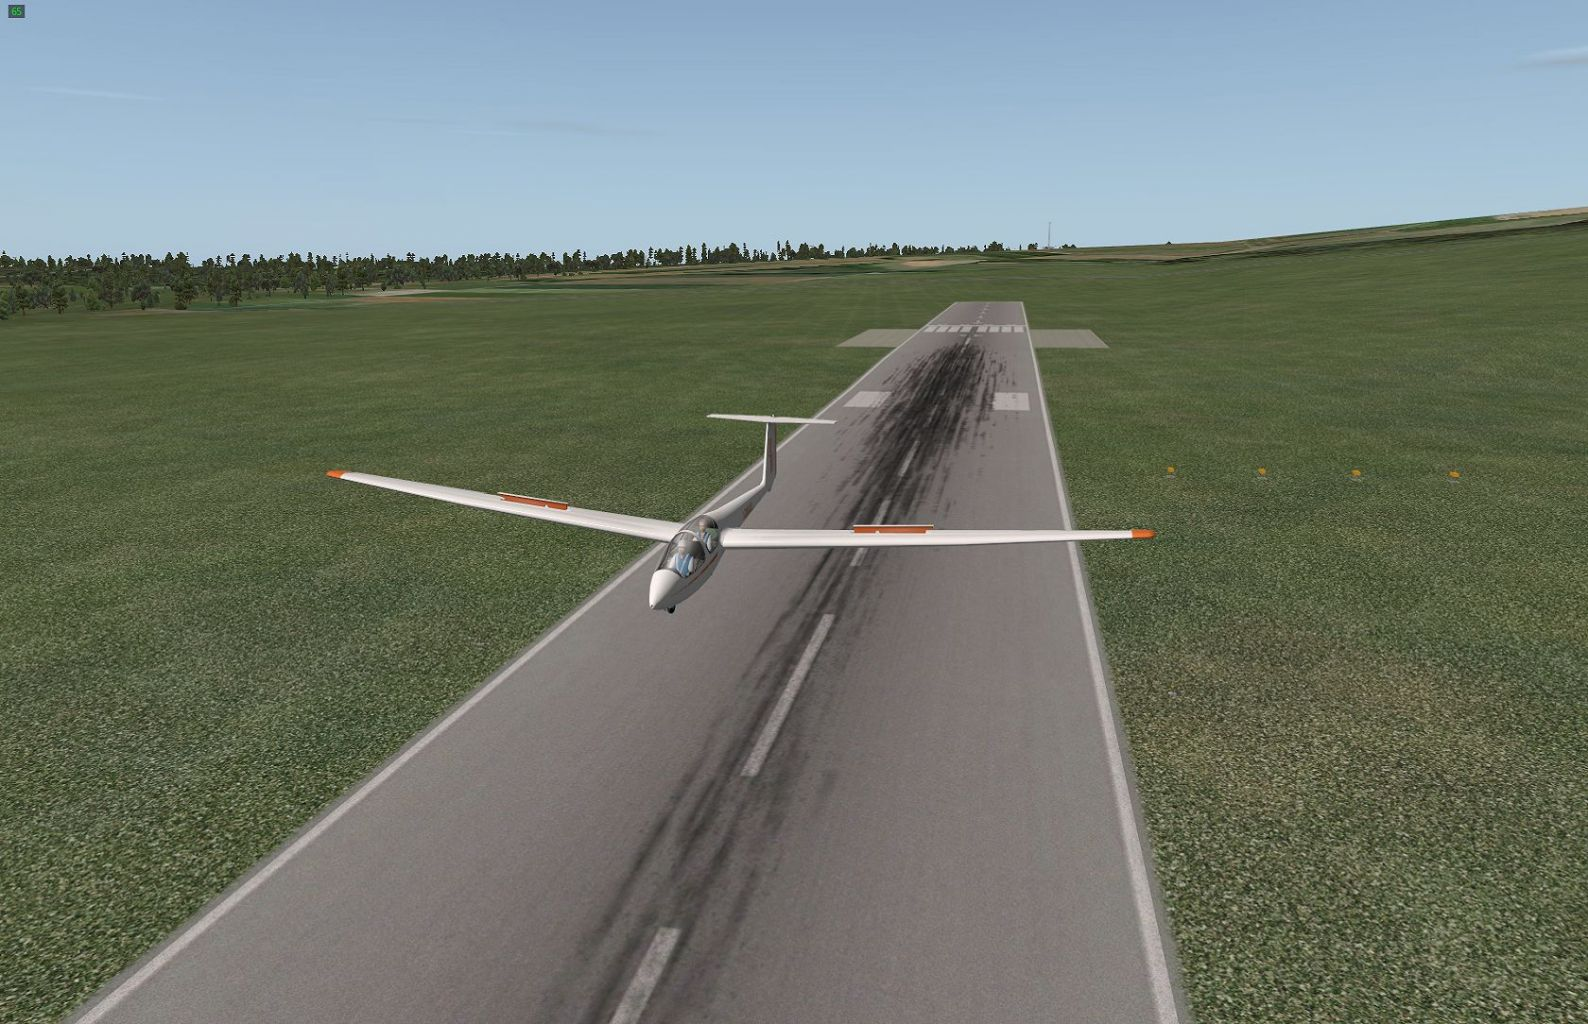 ASK21 Glider, landing At FAPM In Natal, South Africa. X plane 10 with No Add On.